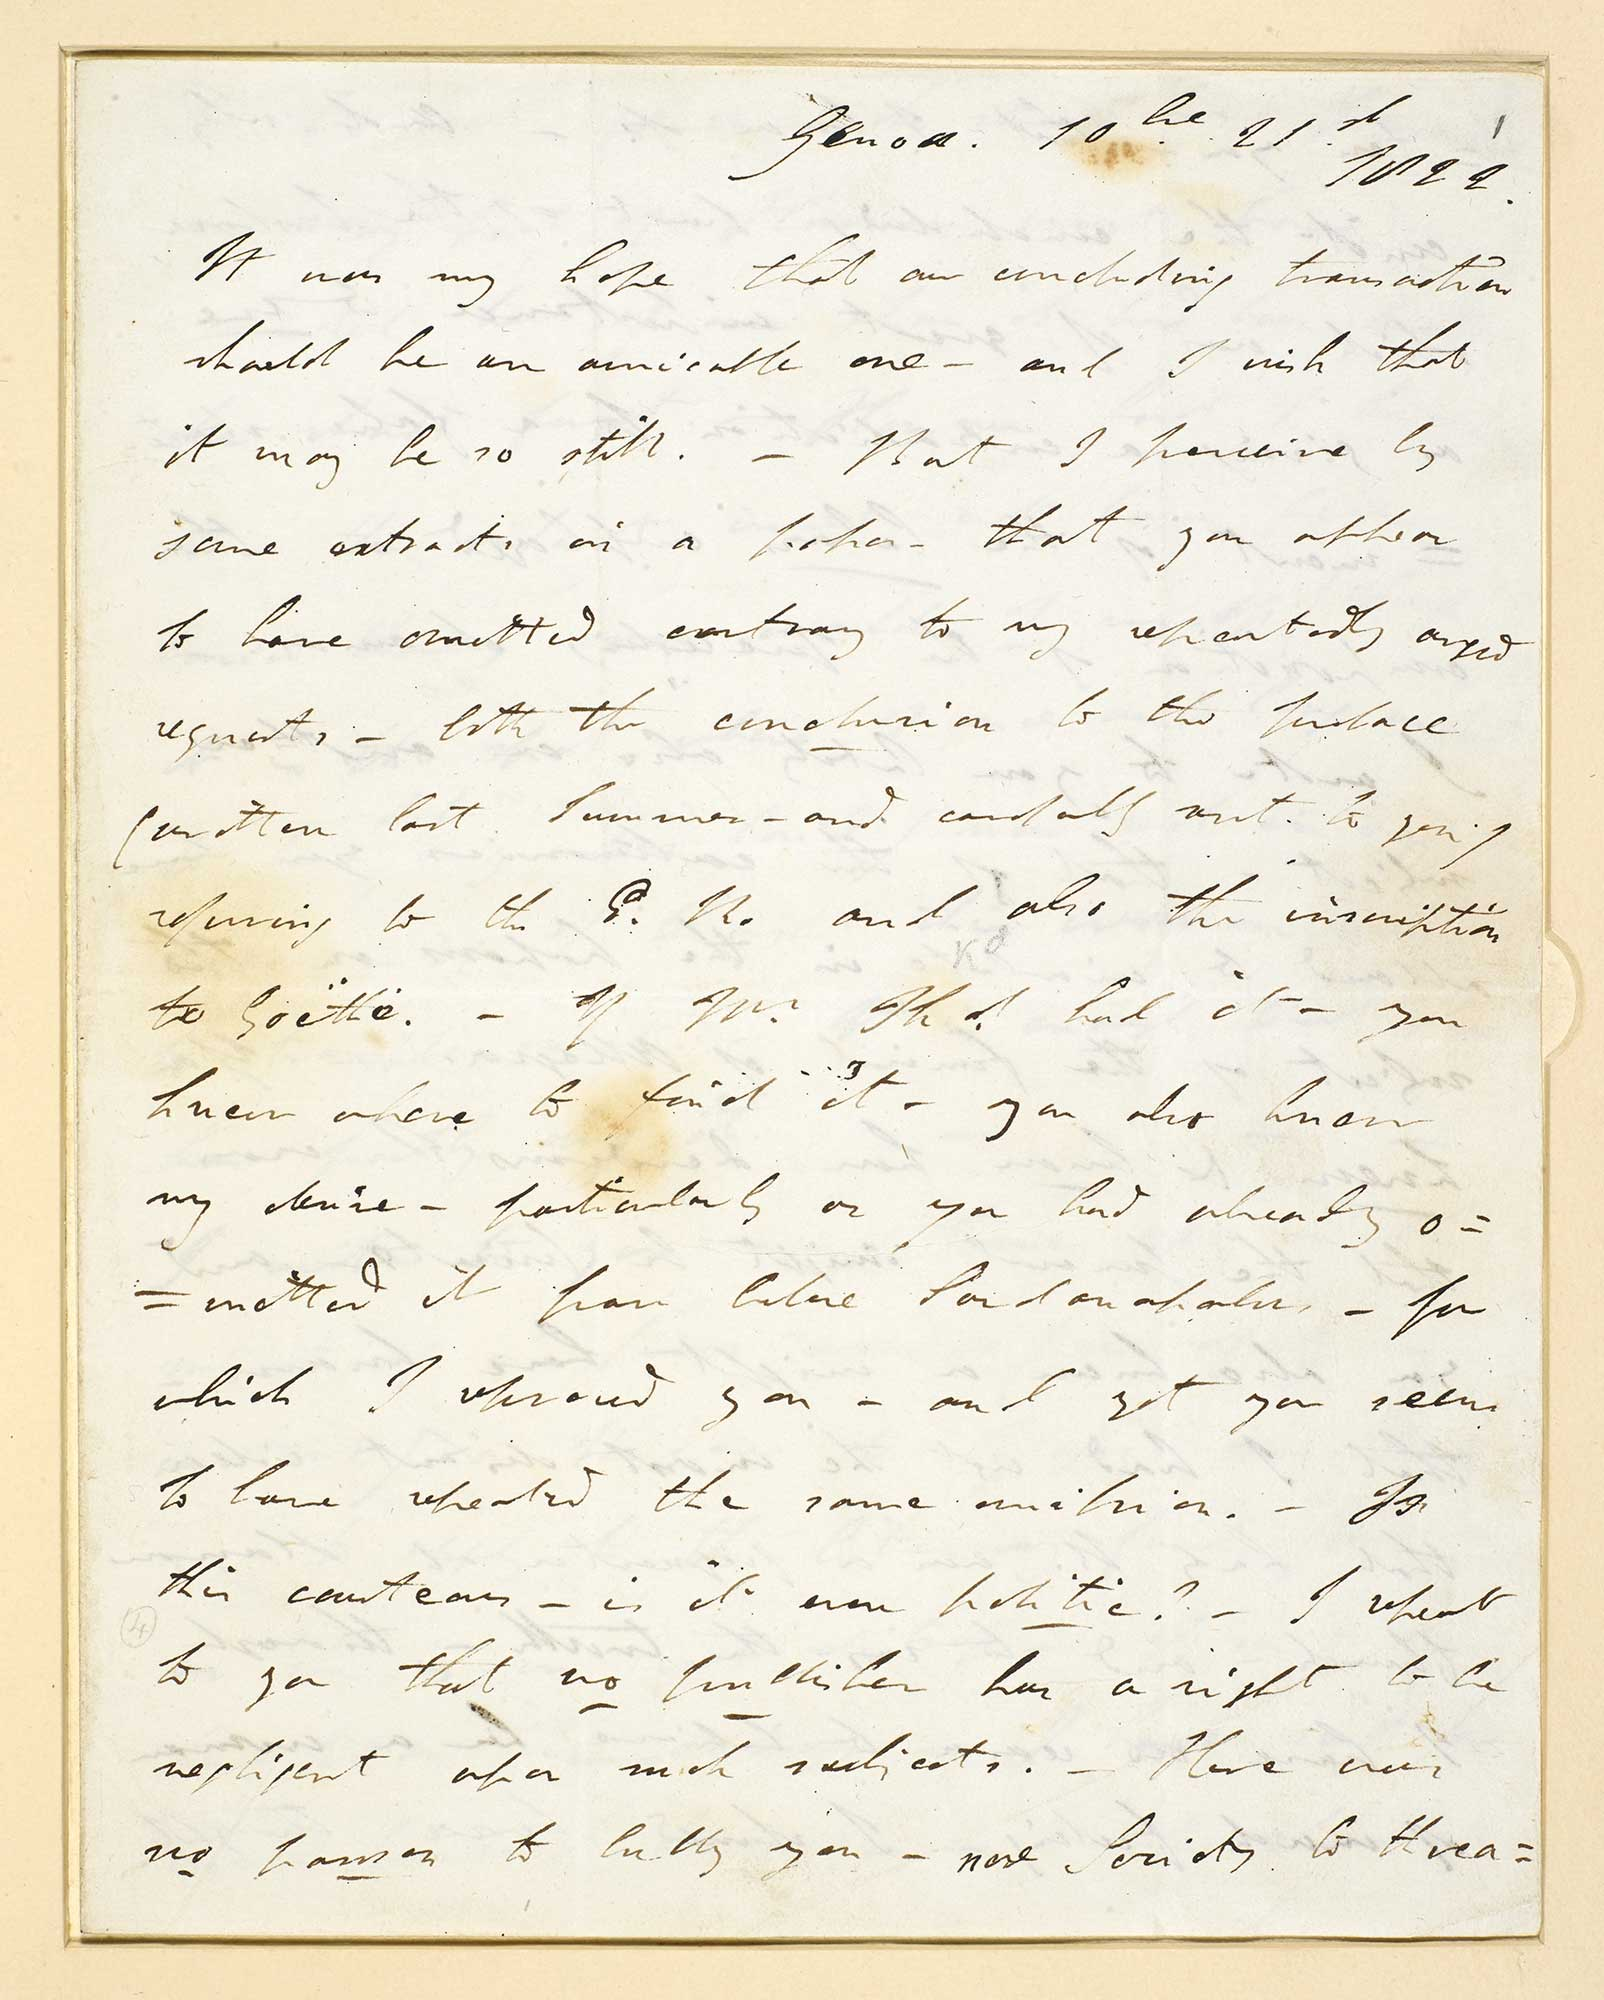 Letter of complaint from Lord Byron to John Murray, 1822